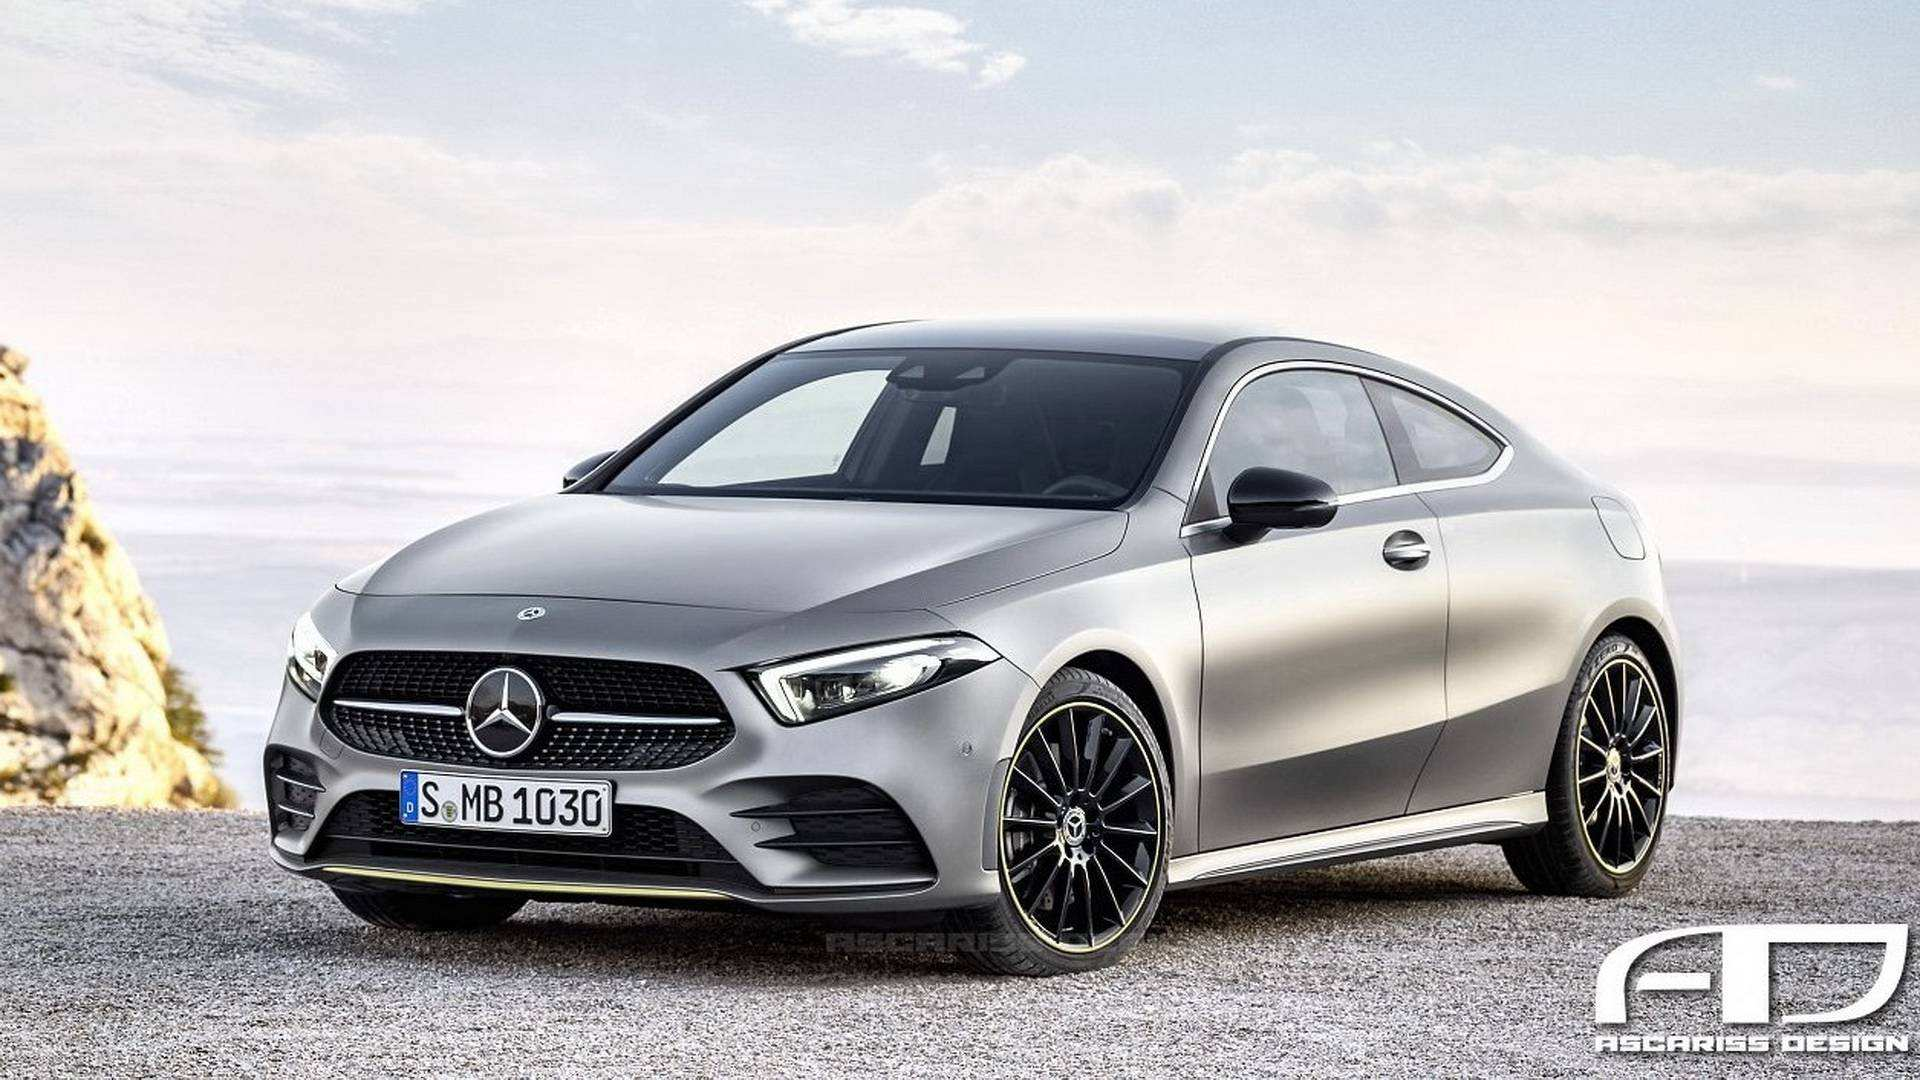 28 New Mercedes E450 Coupe 2020 Ratings for Mercedes E450 Coupe 2020